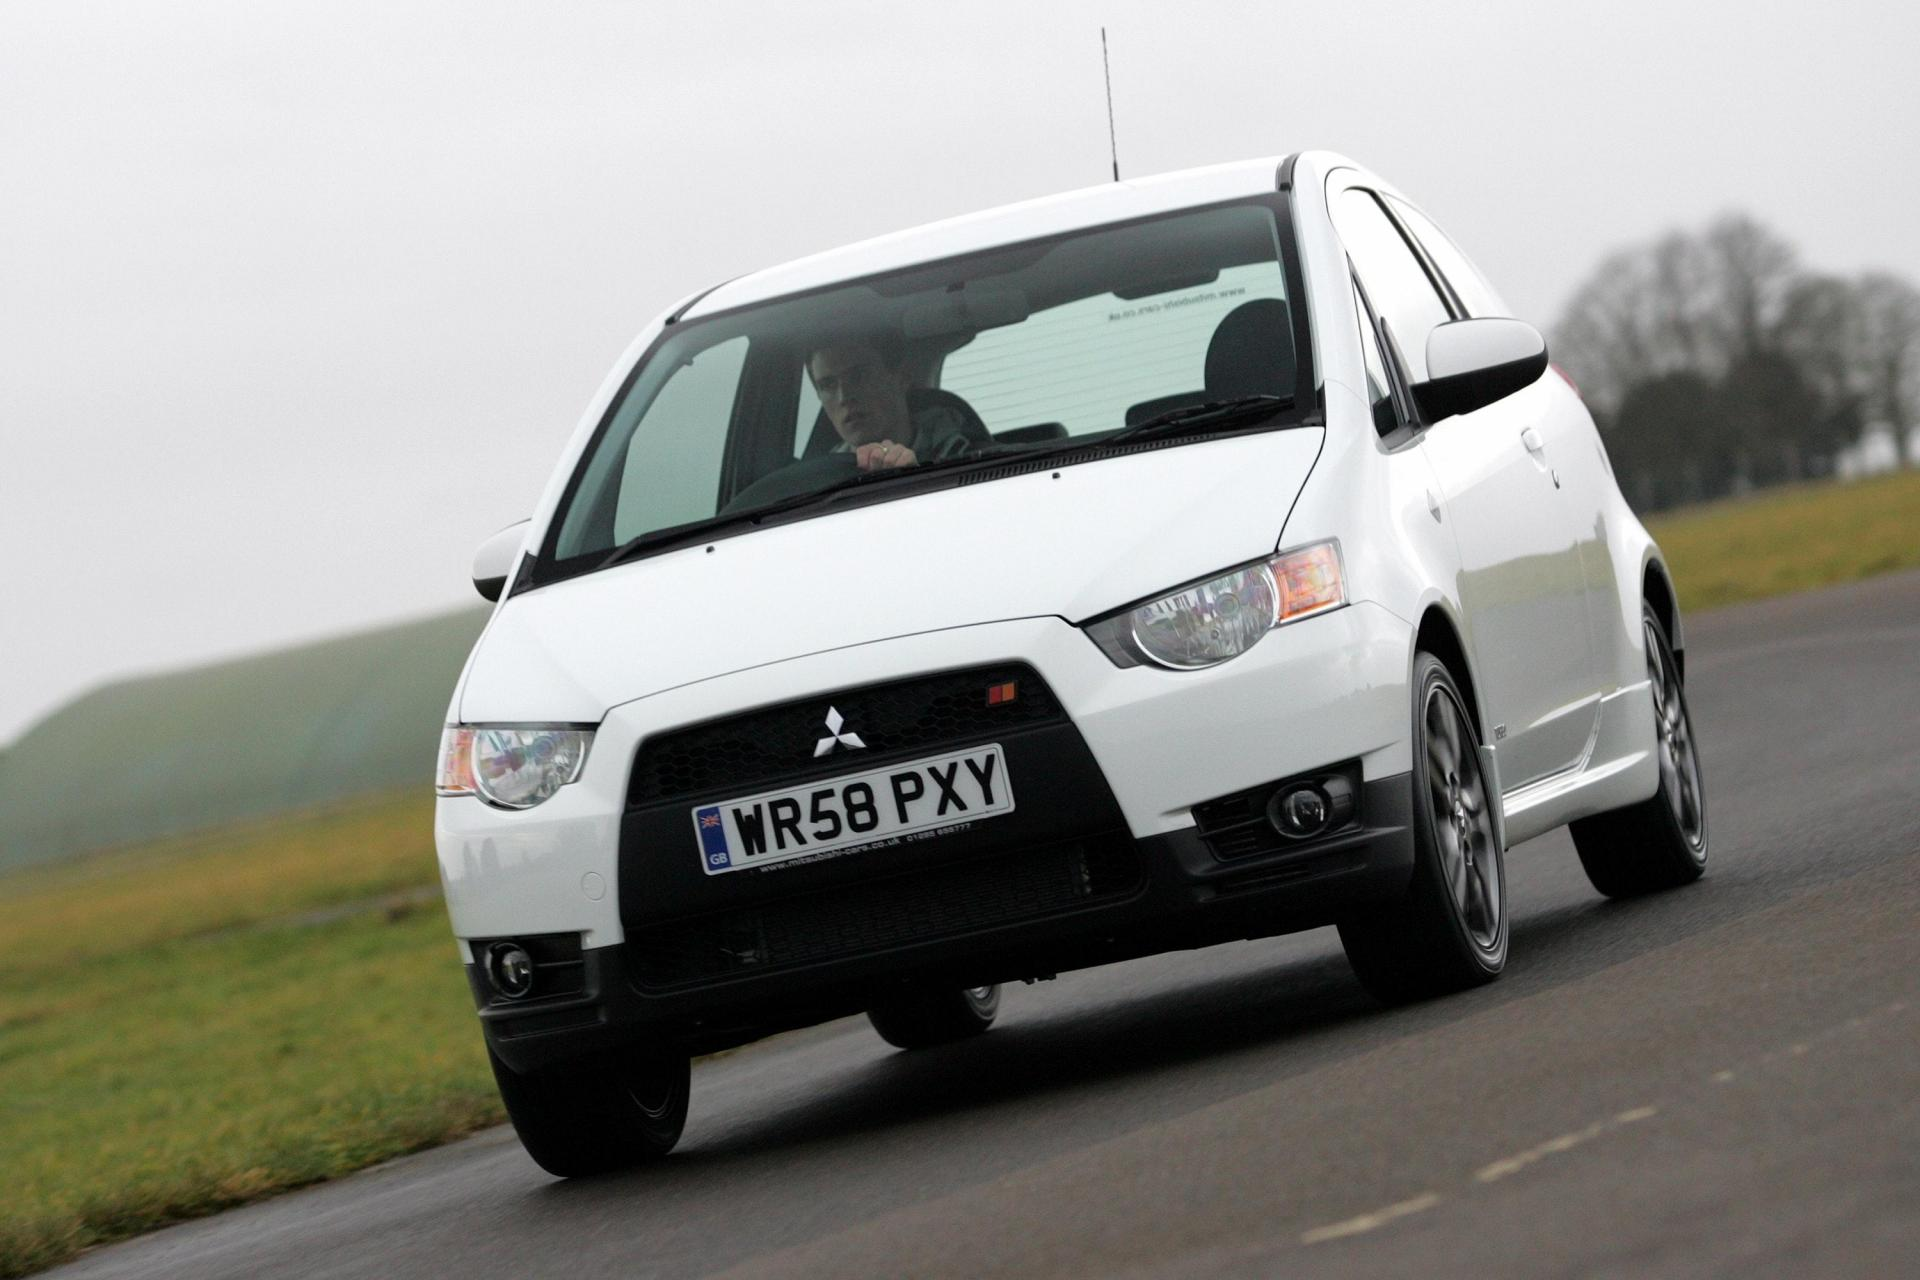 Mitsubishi packed a punchy 1.5-litre engine into the Colt Ralliart. (Mitsubishi)